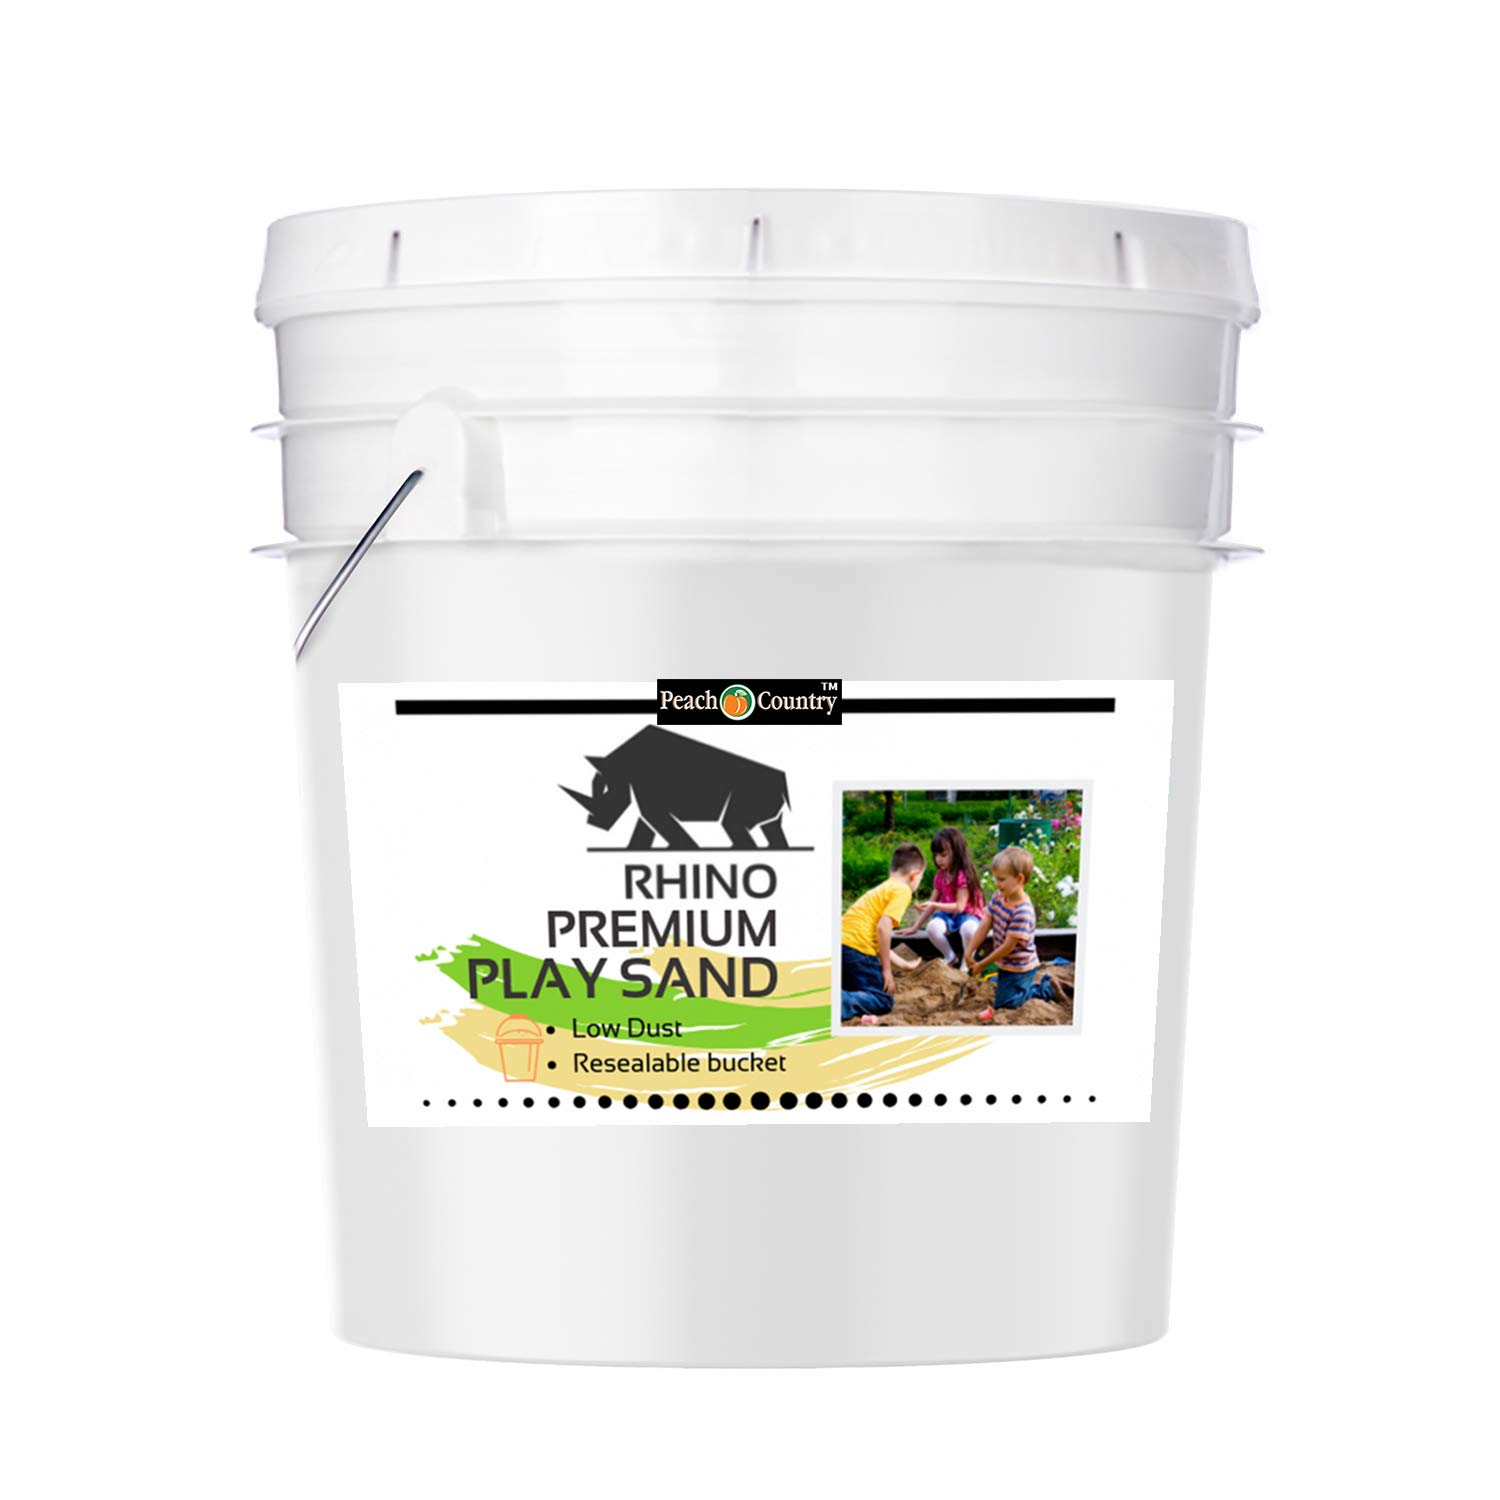 Rhino Natural Premium Low Dust Play Sand- for Sand Box, Play Ground Area, Sand Art, Indoor/Outdoor with Resealable Bucket (50 Pound Bucket) by Peach Country (Image #1)